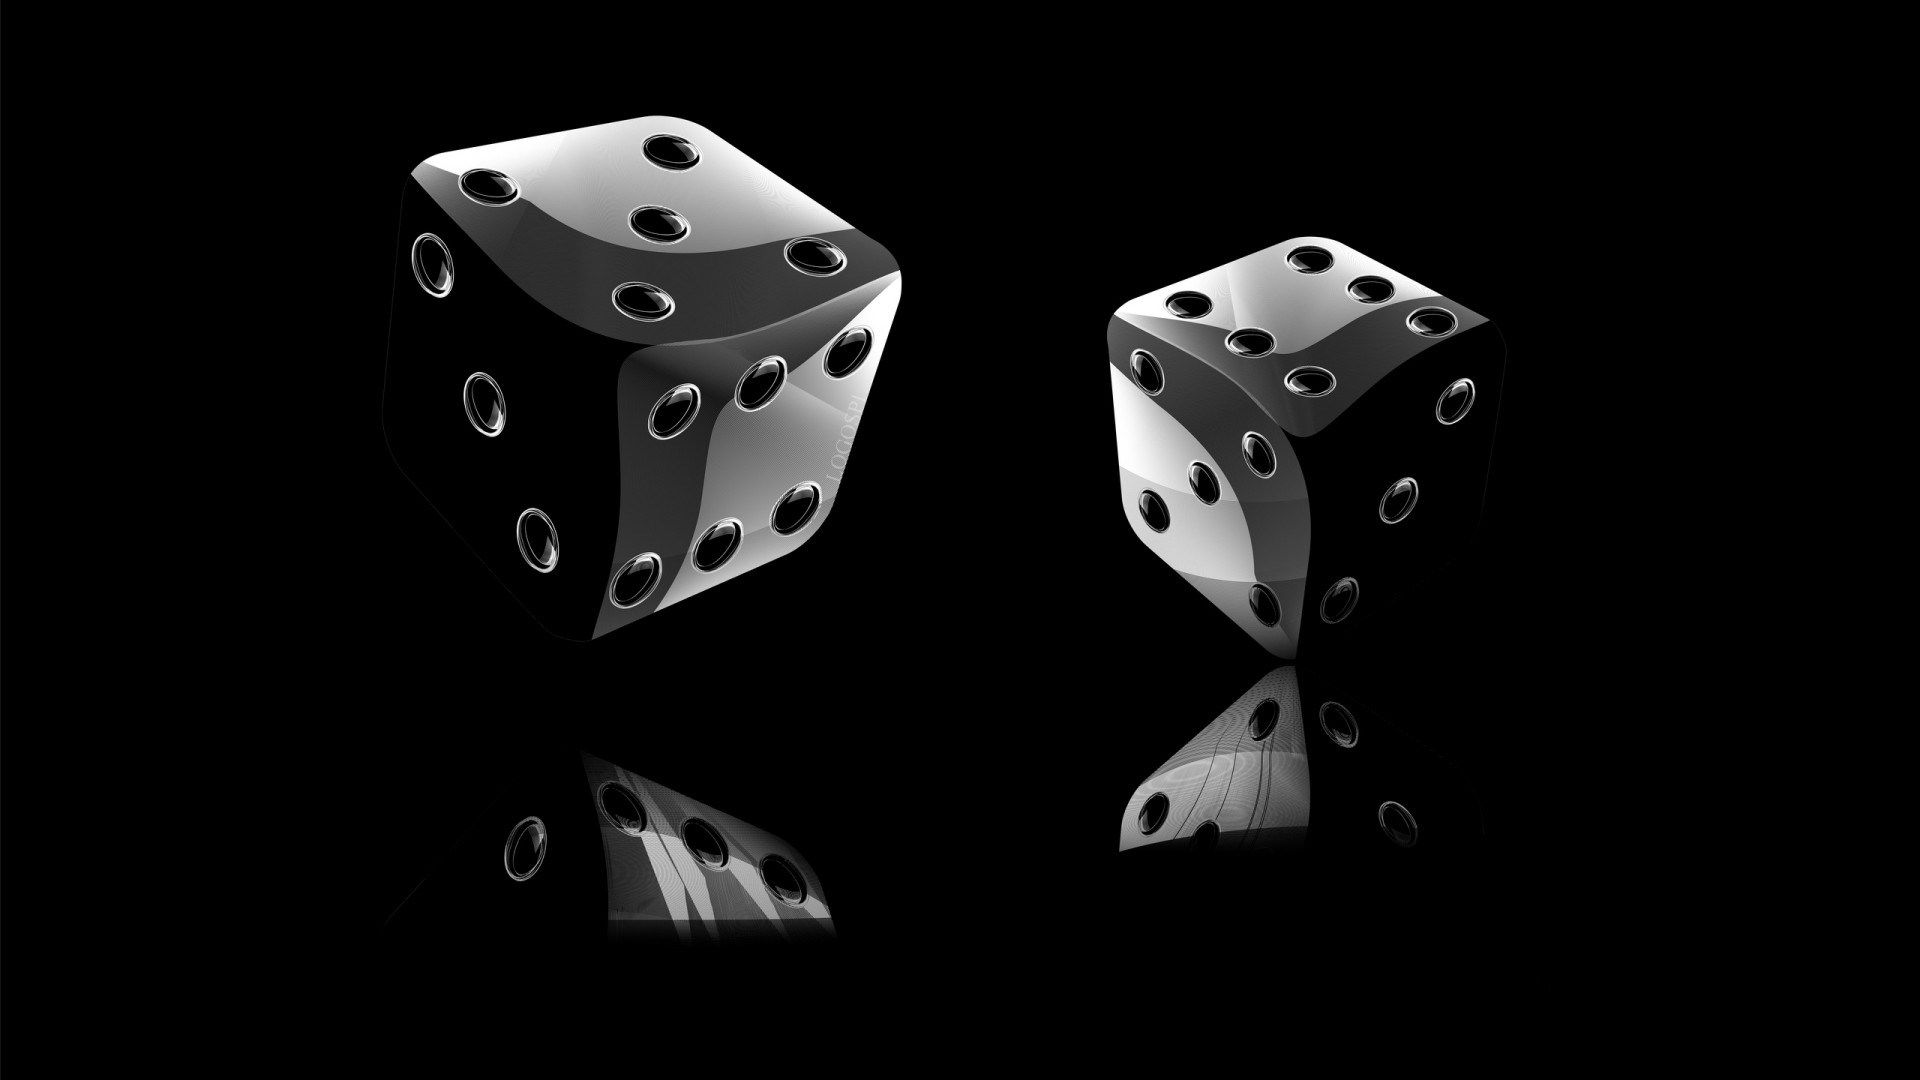 Cool Black And White Backgrounds 3662 Hd Wallpapers